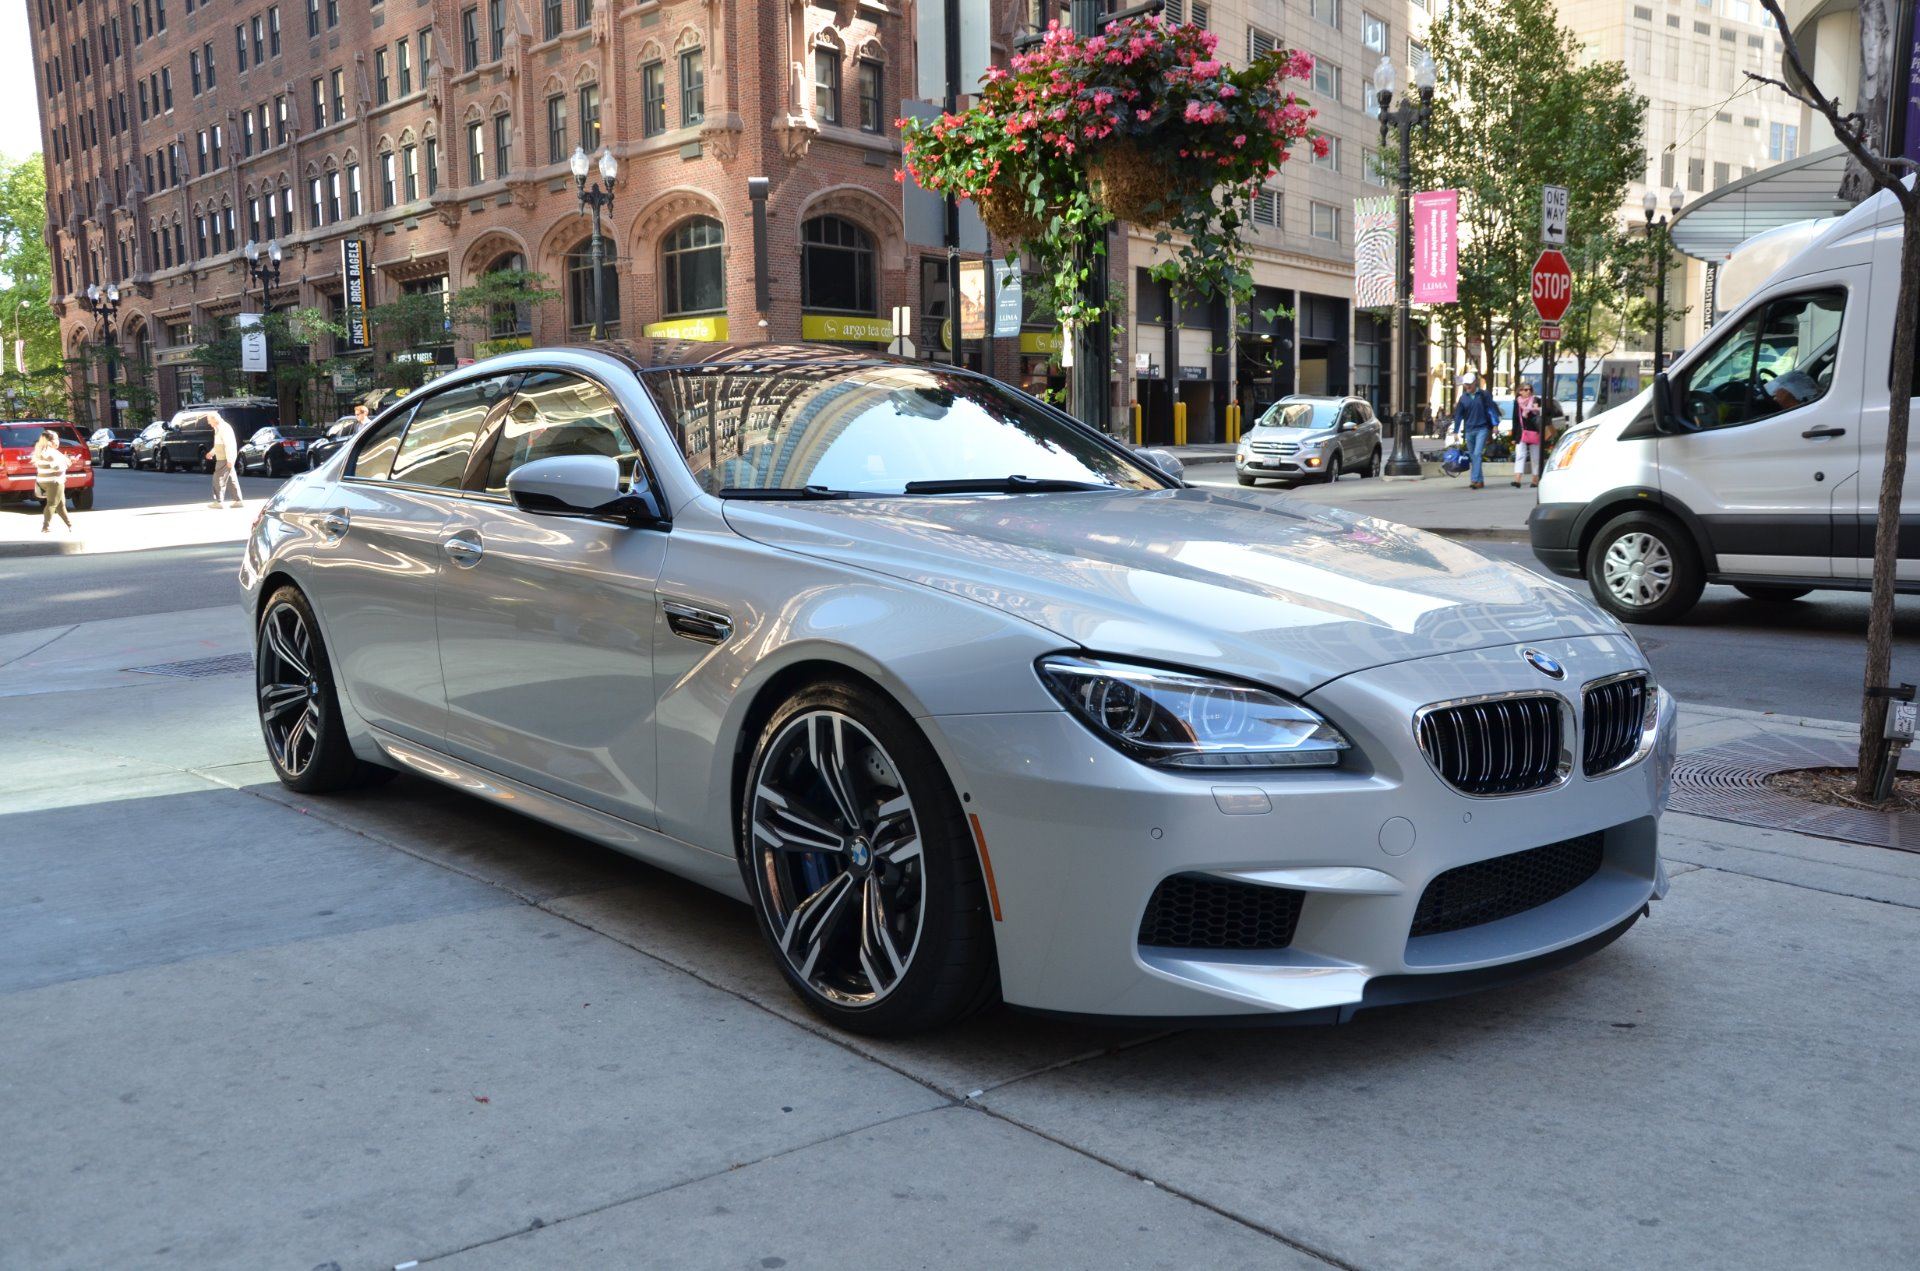 2015 bmw m6 gran coupe stock b920a for sale near chicago il il bmw dealer. Black Bedroom Furniture Sets. Home Design Ideas